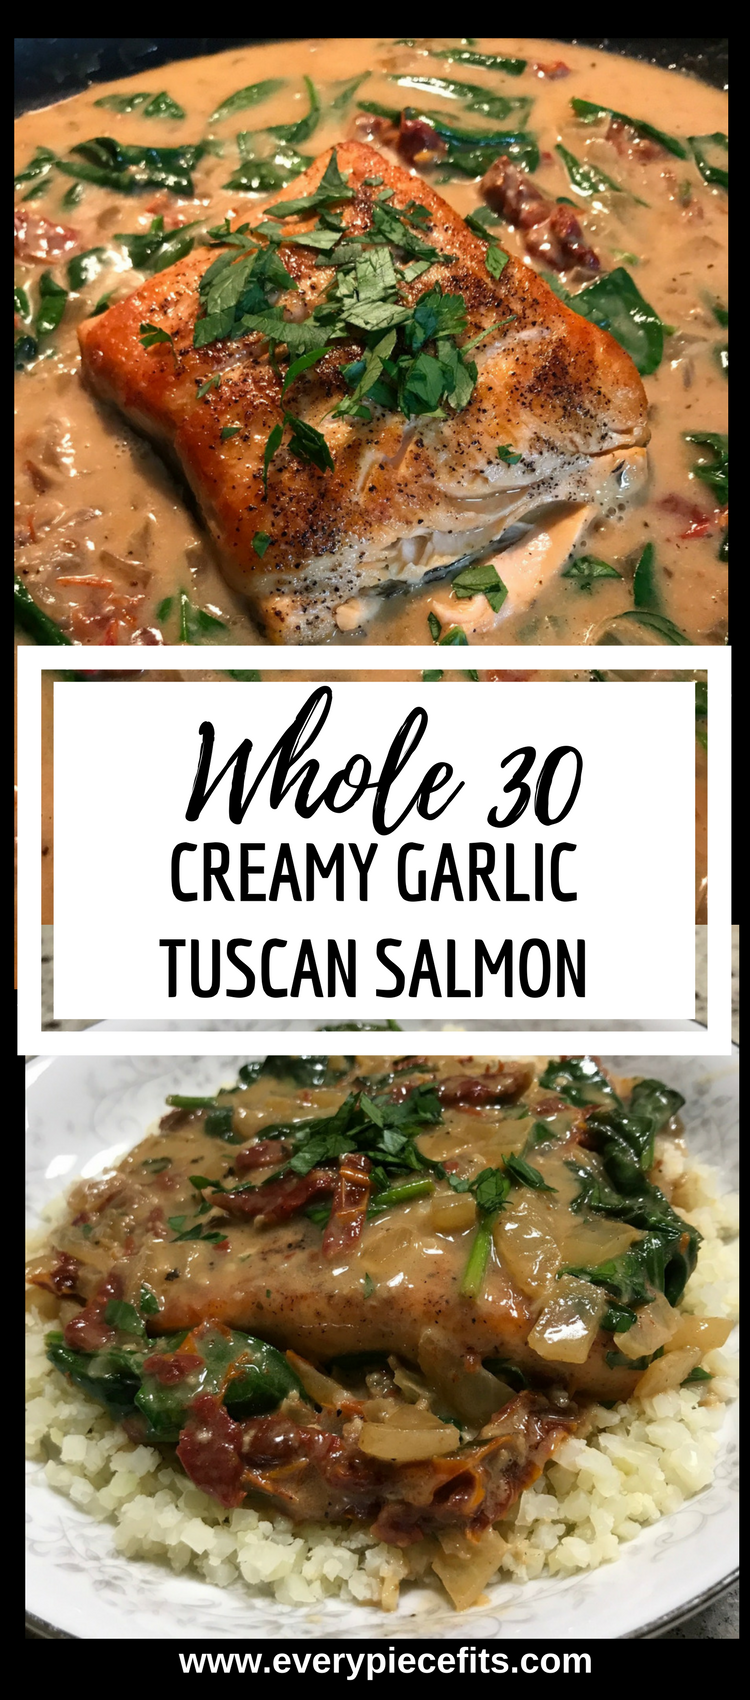 Whole 30 & Paleo Creamy Garlic Tuscan Salmon.png